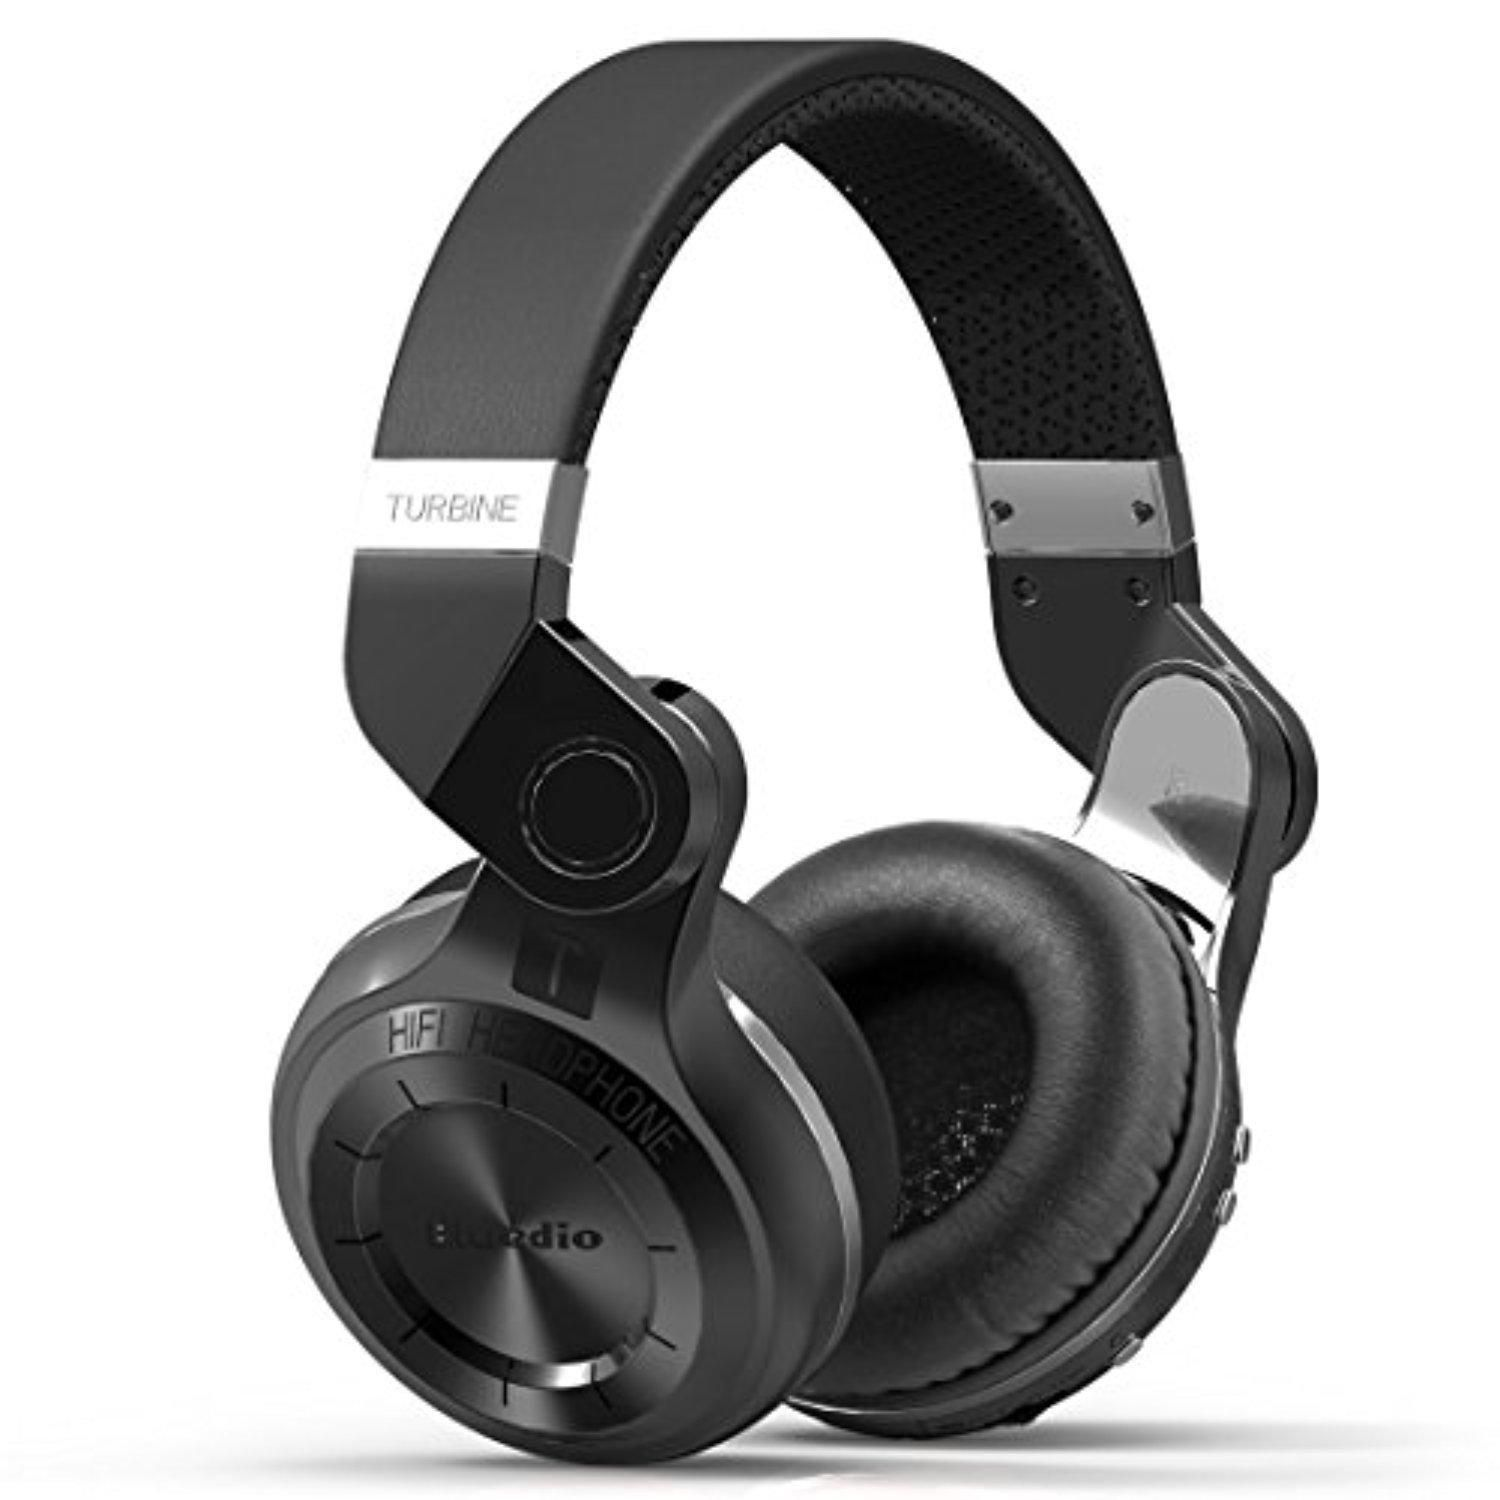 Bluetooth Headphones Bluetooth Headset Drunkqueen V4 1 Edr Noise Cancelling Hi Fi Foldable Built In Microphone Super Extra Bass Stereo Wireless Over Ear Earph Headphones Wireless Headphones Headset